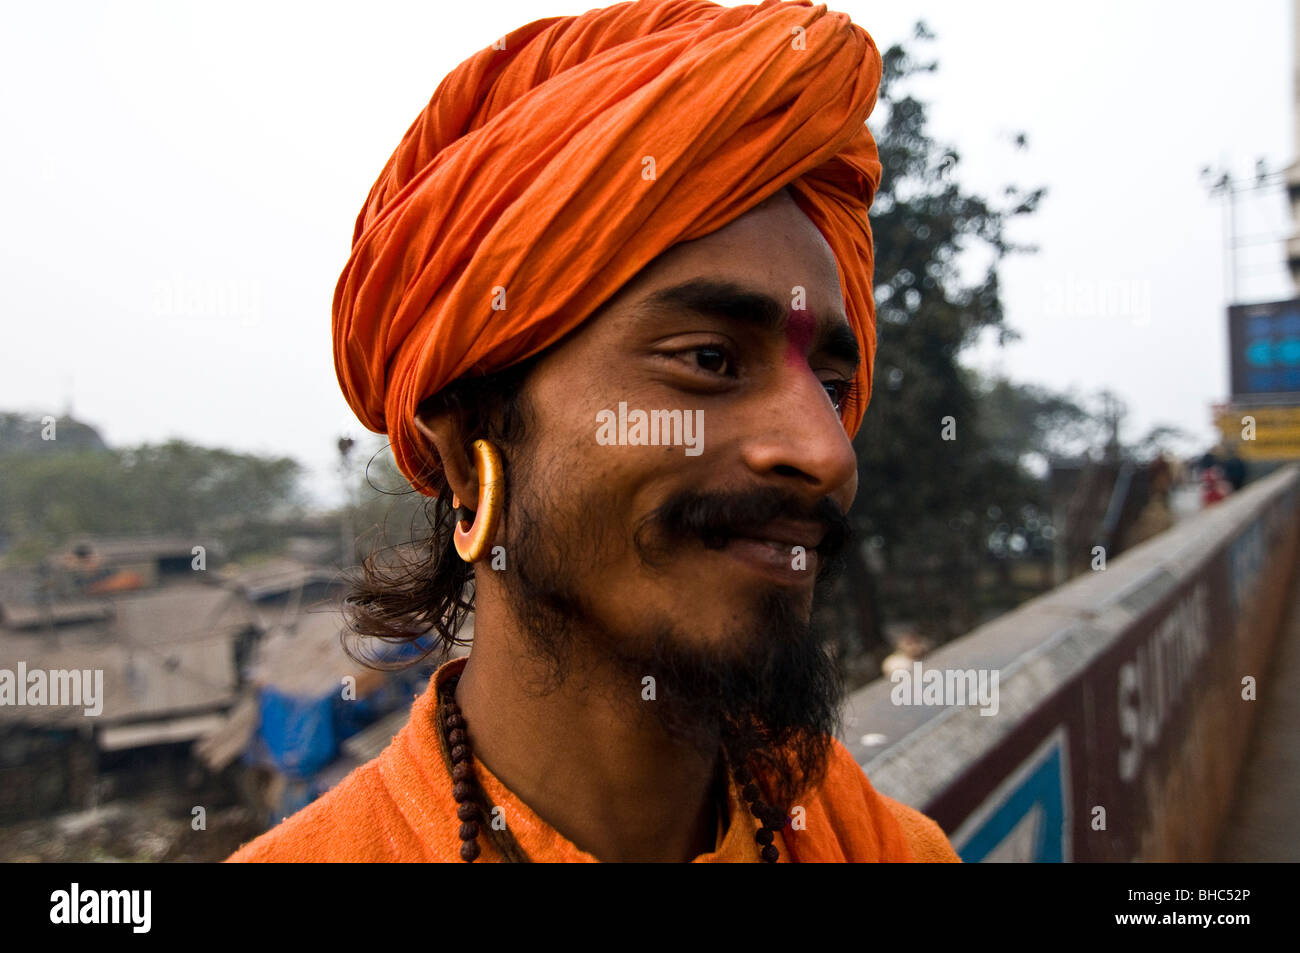 An Indian sadhu with a  big earring. - Stock Image